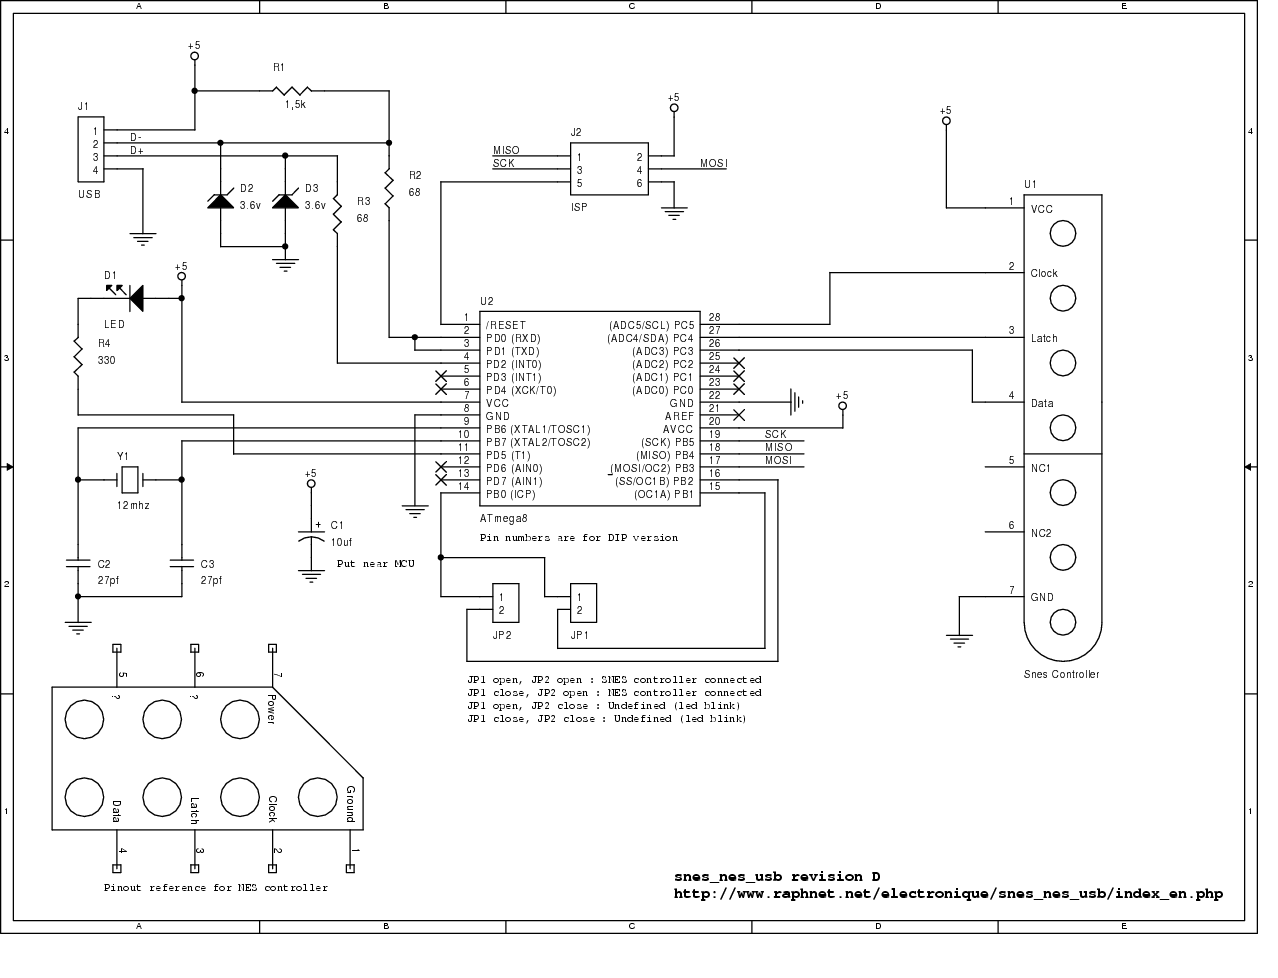 Snes Nes Gamepad And Mouse To Usb Adapter Programmer Circuit Atmega8 Avr Schematic Pcb Isp